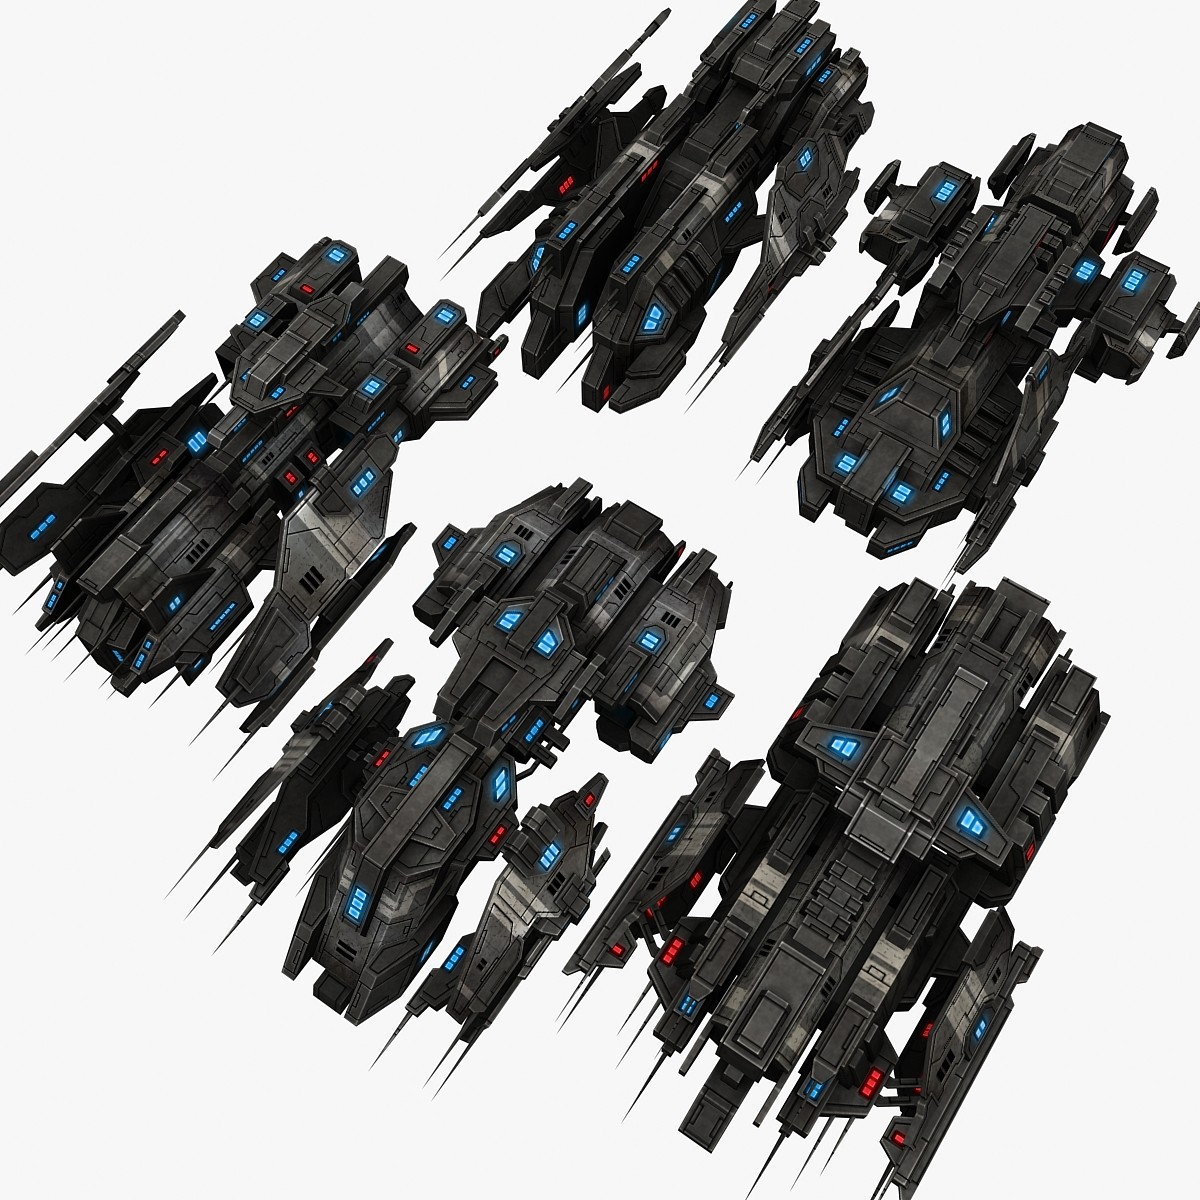 5_battleship_fighters_preview_0.jpg